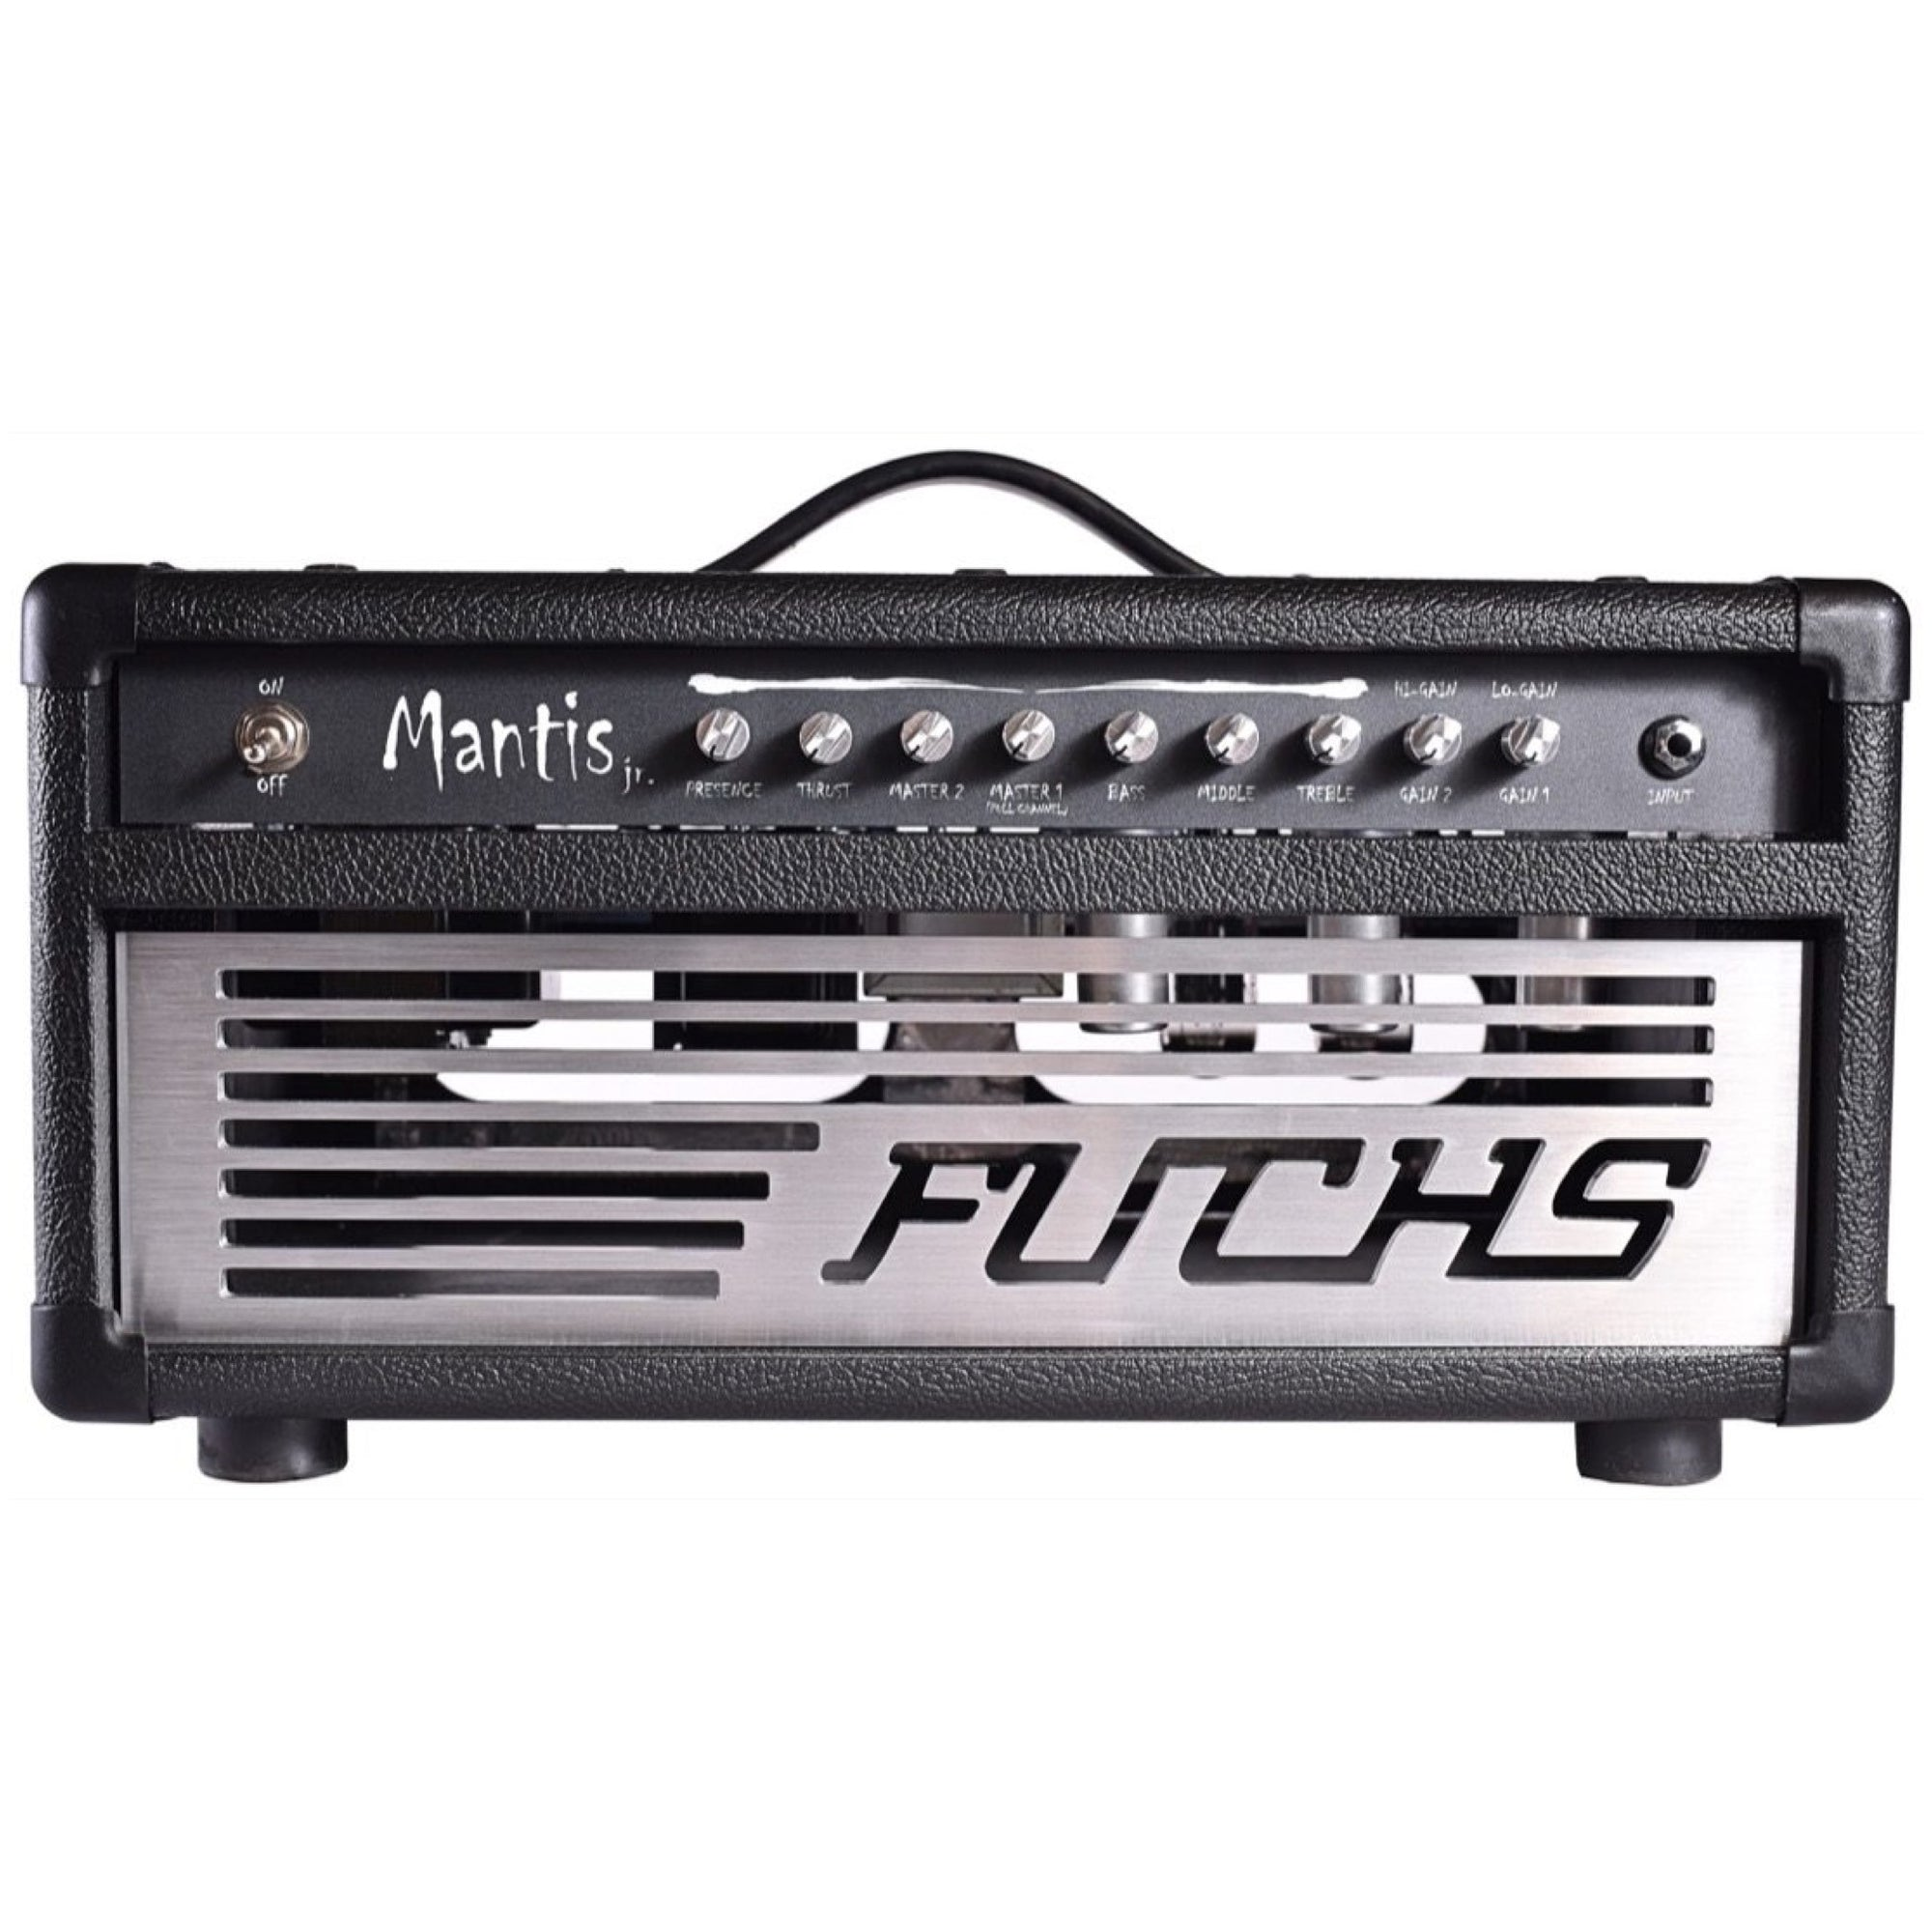 Fuchs Mantis Jr. Guitar Amplifier Head (50 Watts)